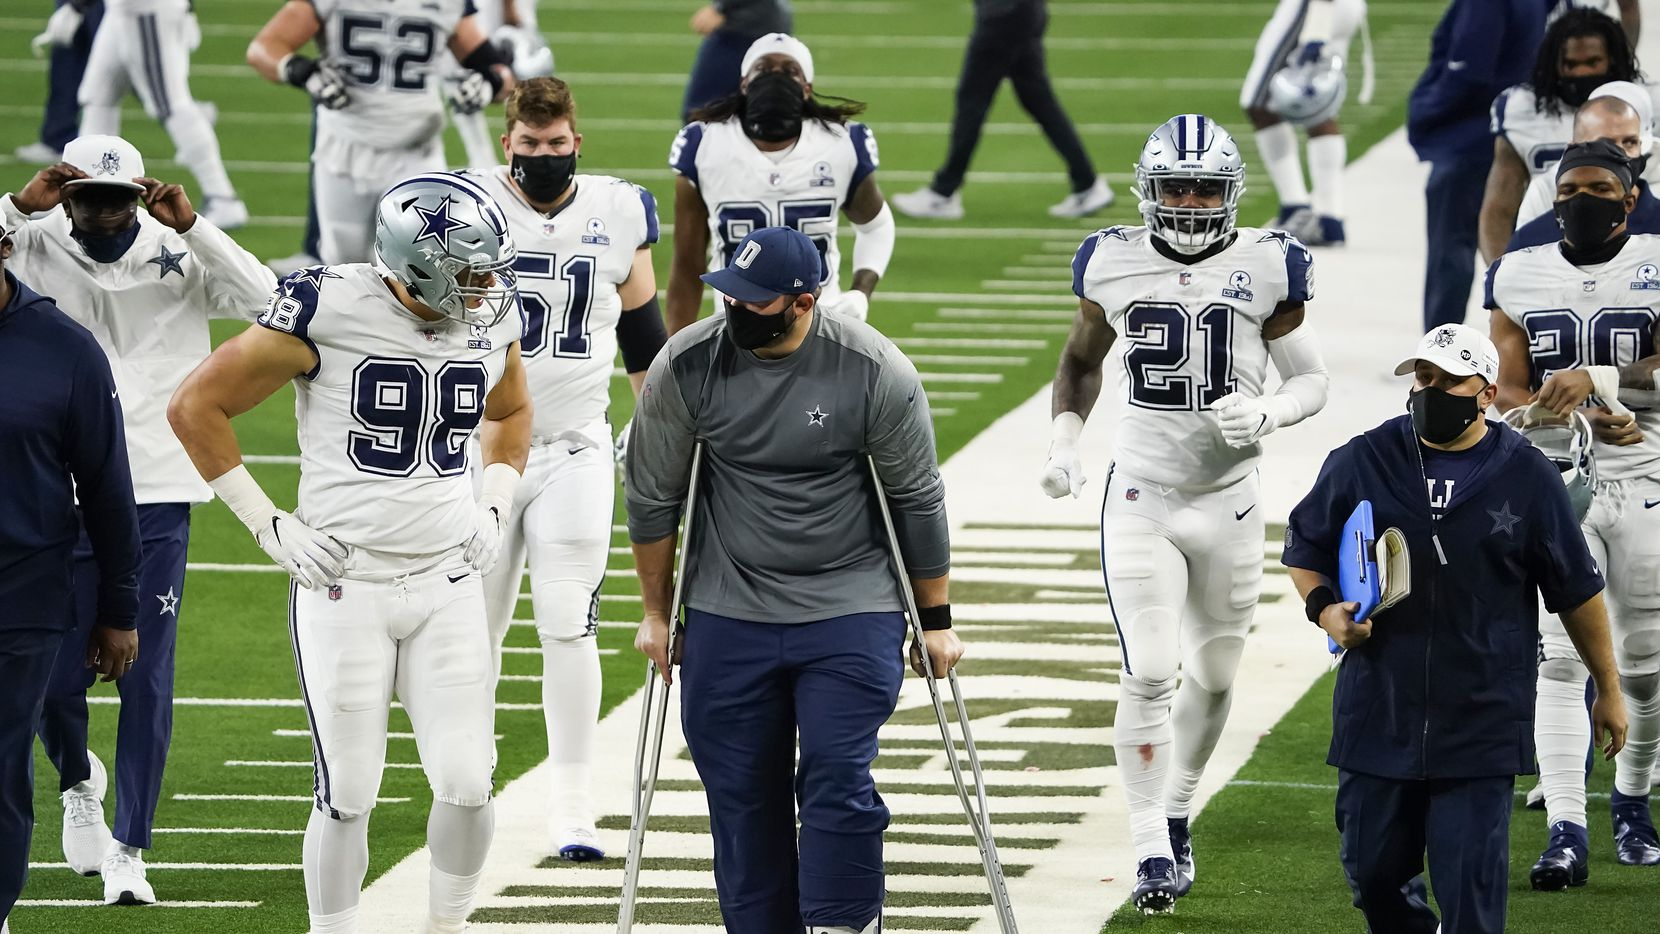 Dallas Cowboys offensive guard Zack Martin leaves the field on crutches after a 41-16 loss to the Washington Football Team an NFL football game at AT&T Stadium on Thursday, Nov. 26, 2020, in Arlington.